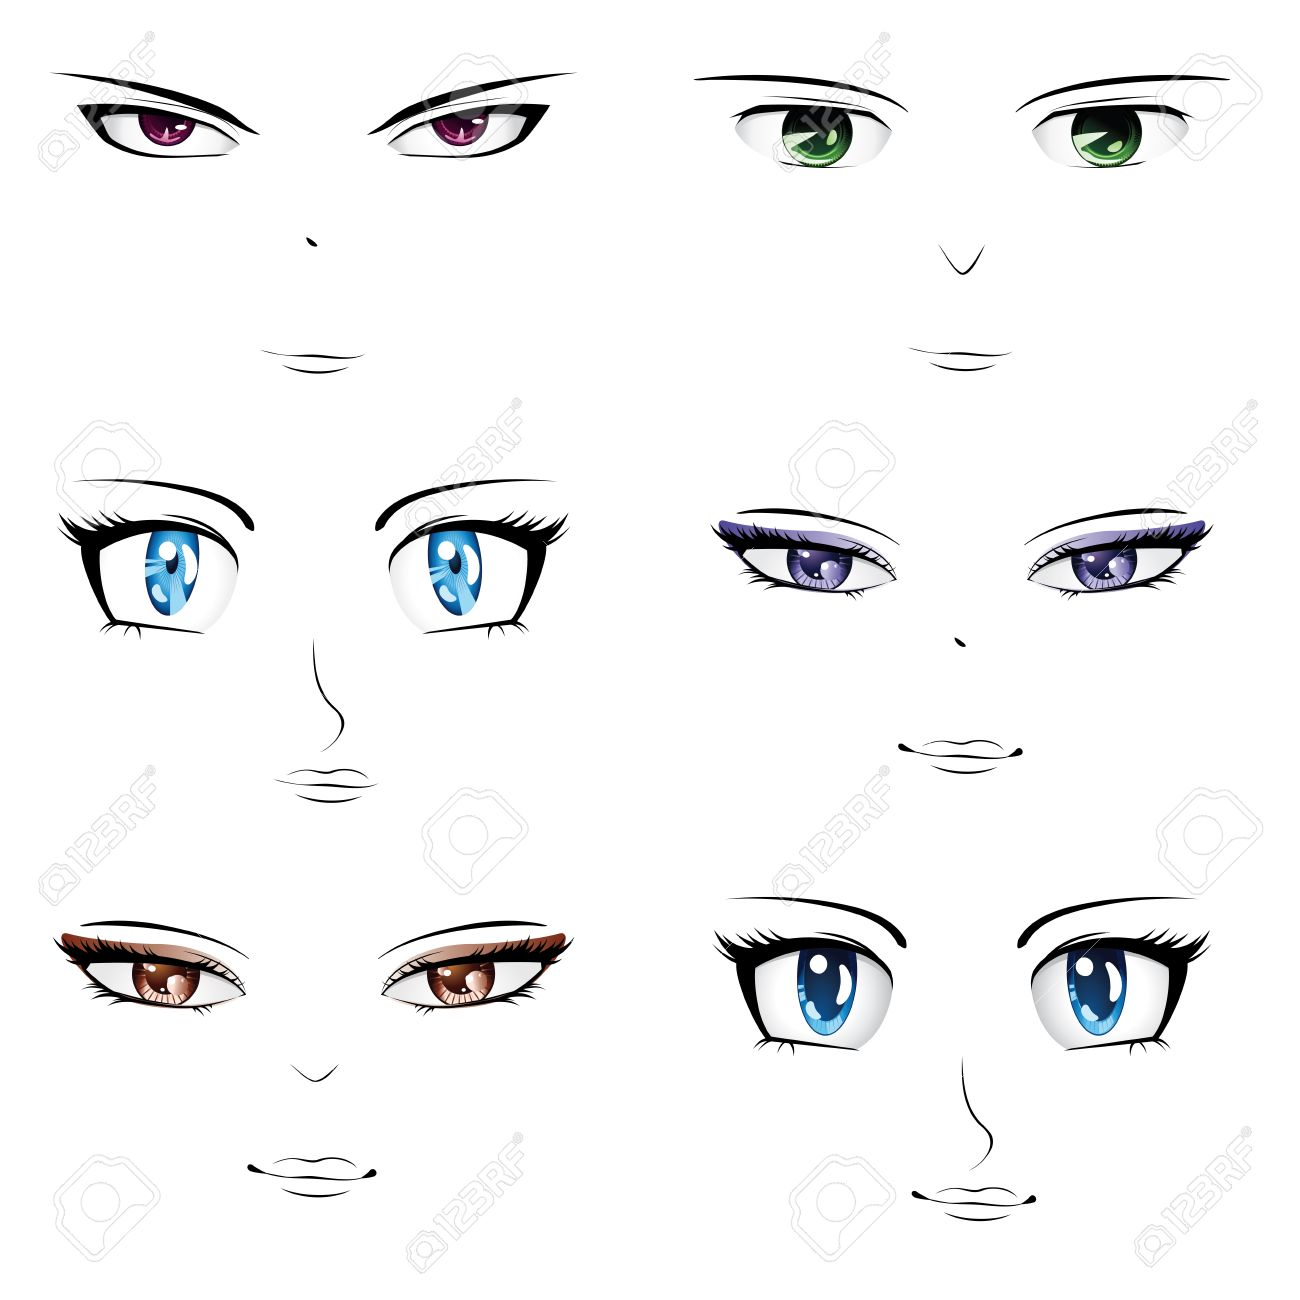 Set of different faces in manga anime style stock vector 23196512